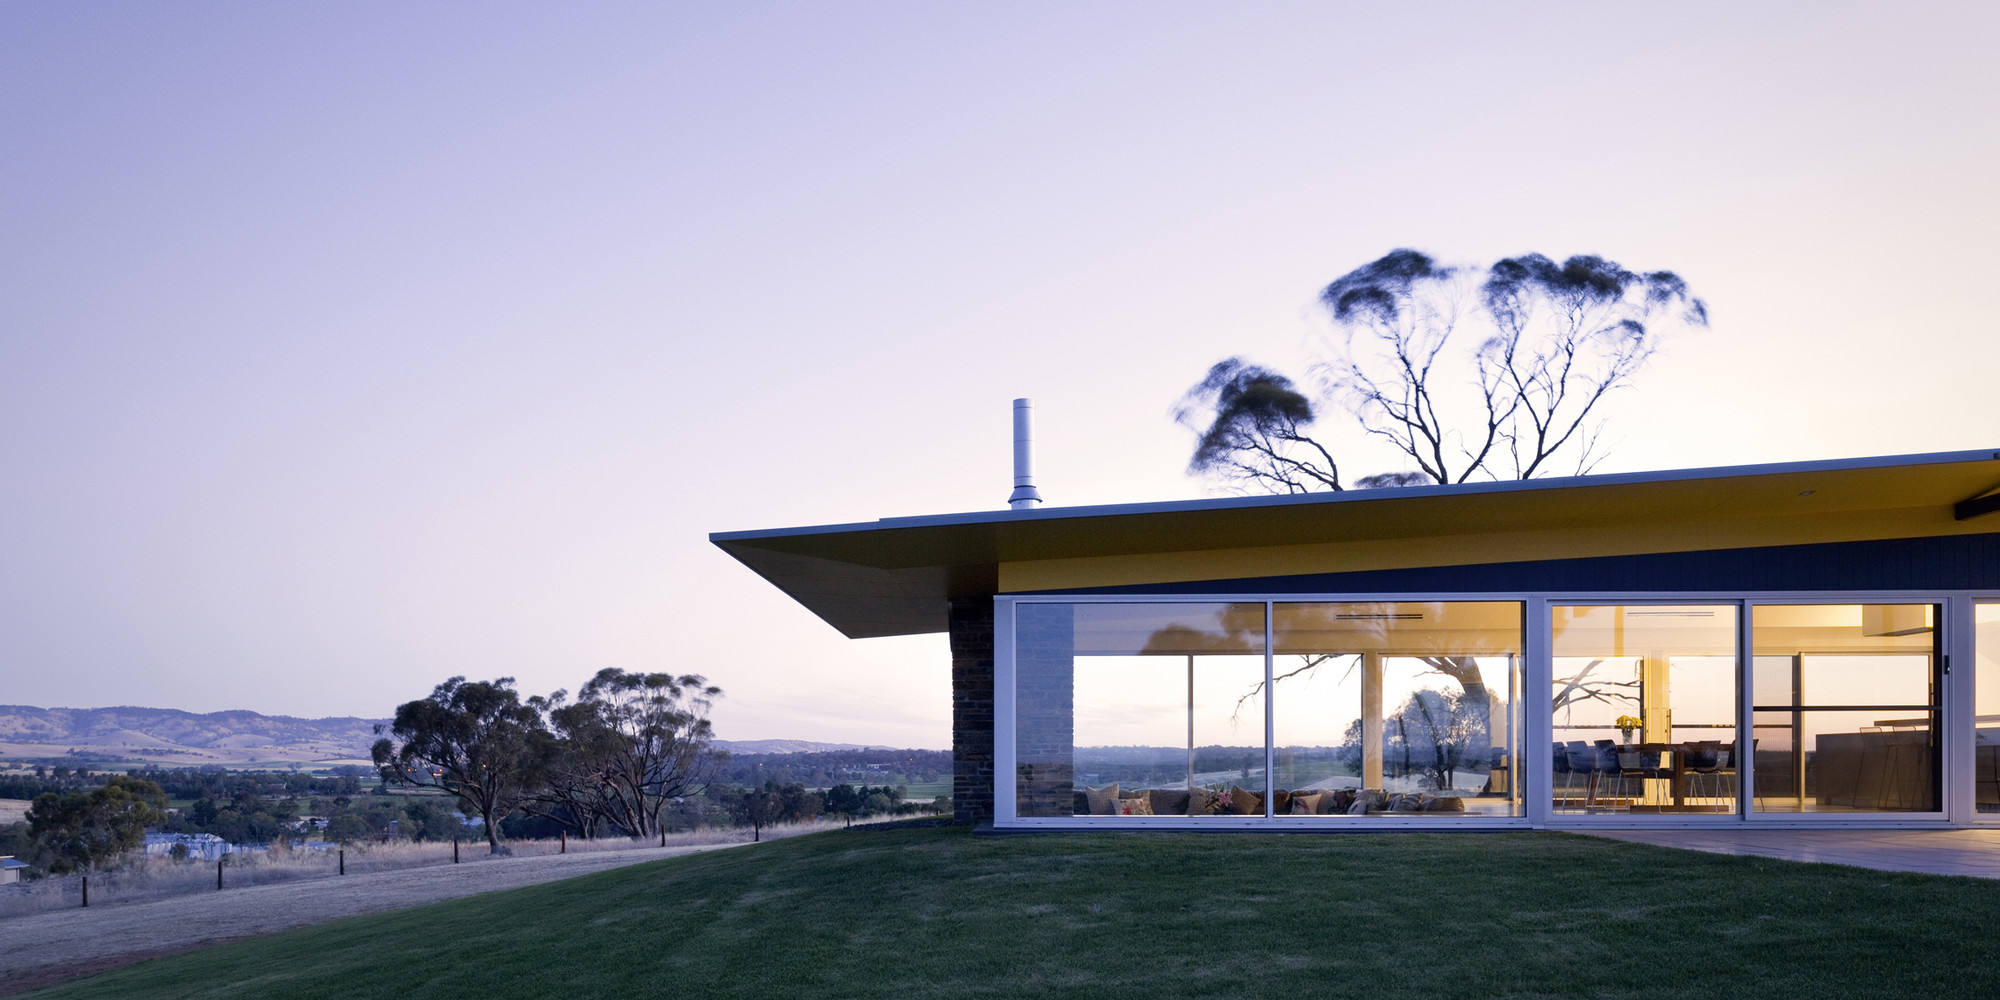 Barossa house max pritchard architect archdaily for Architects south australia